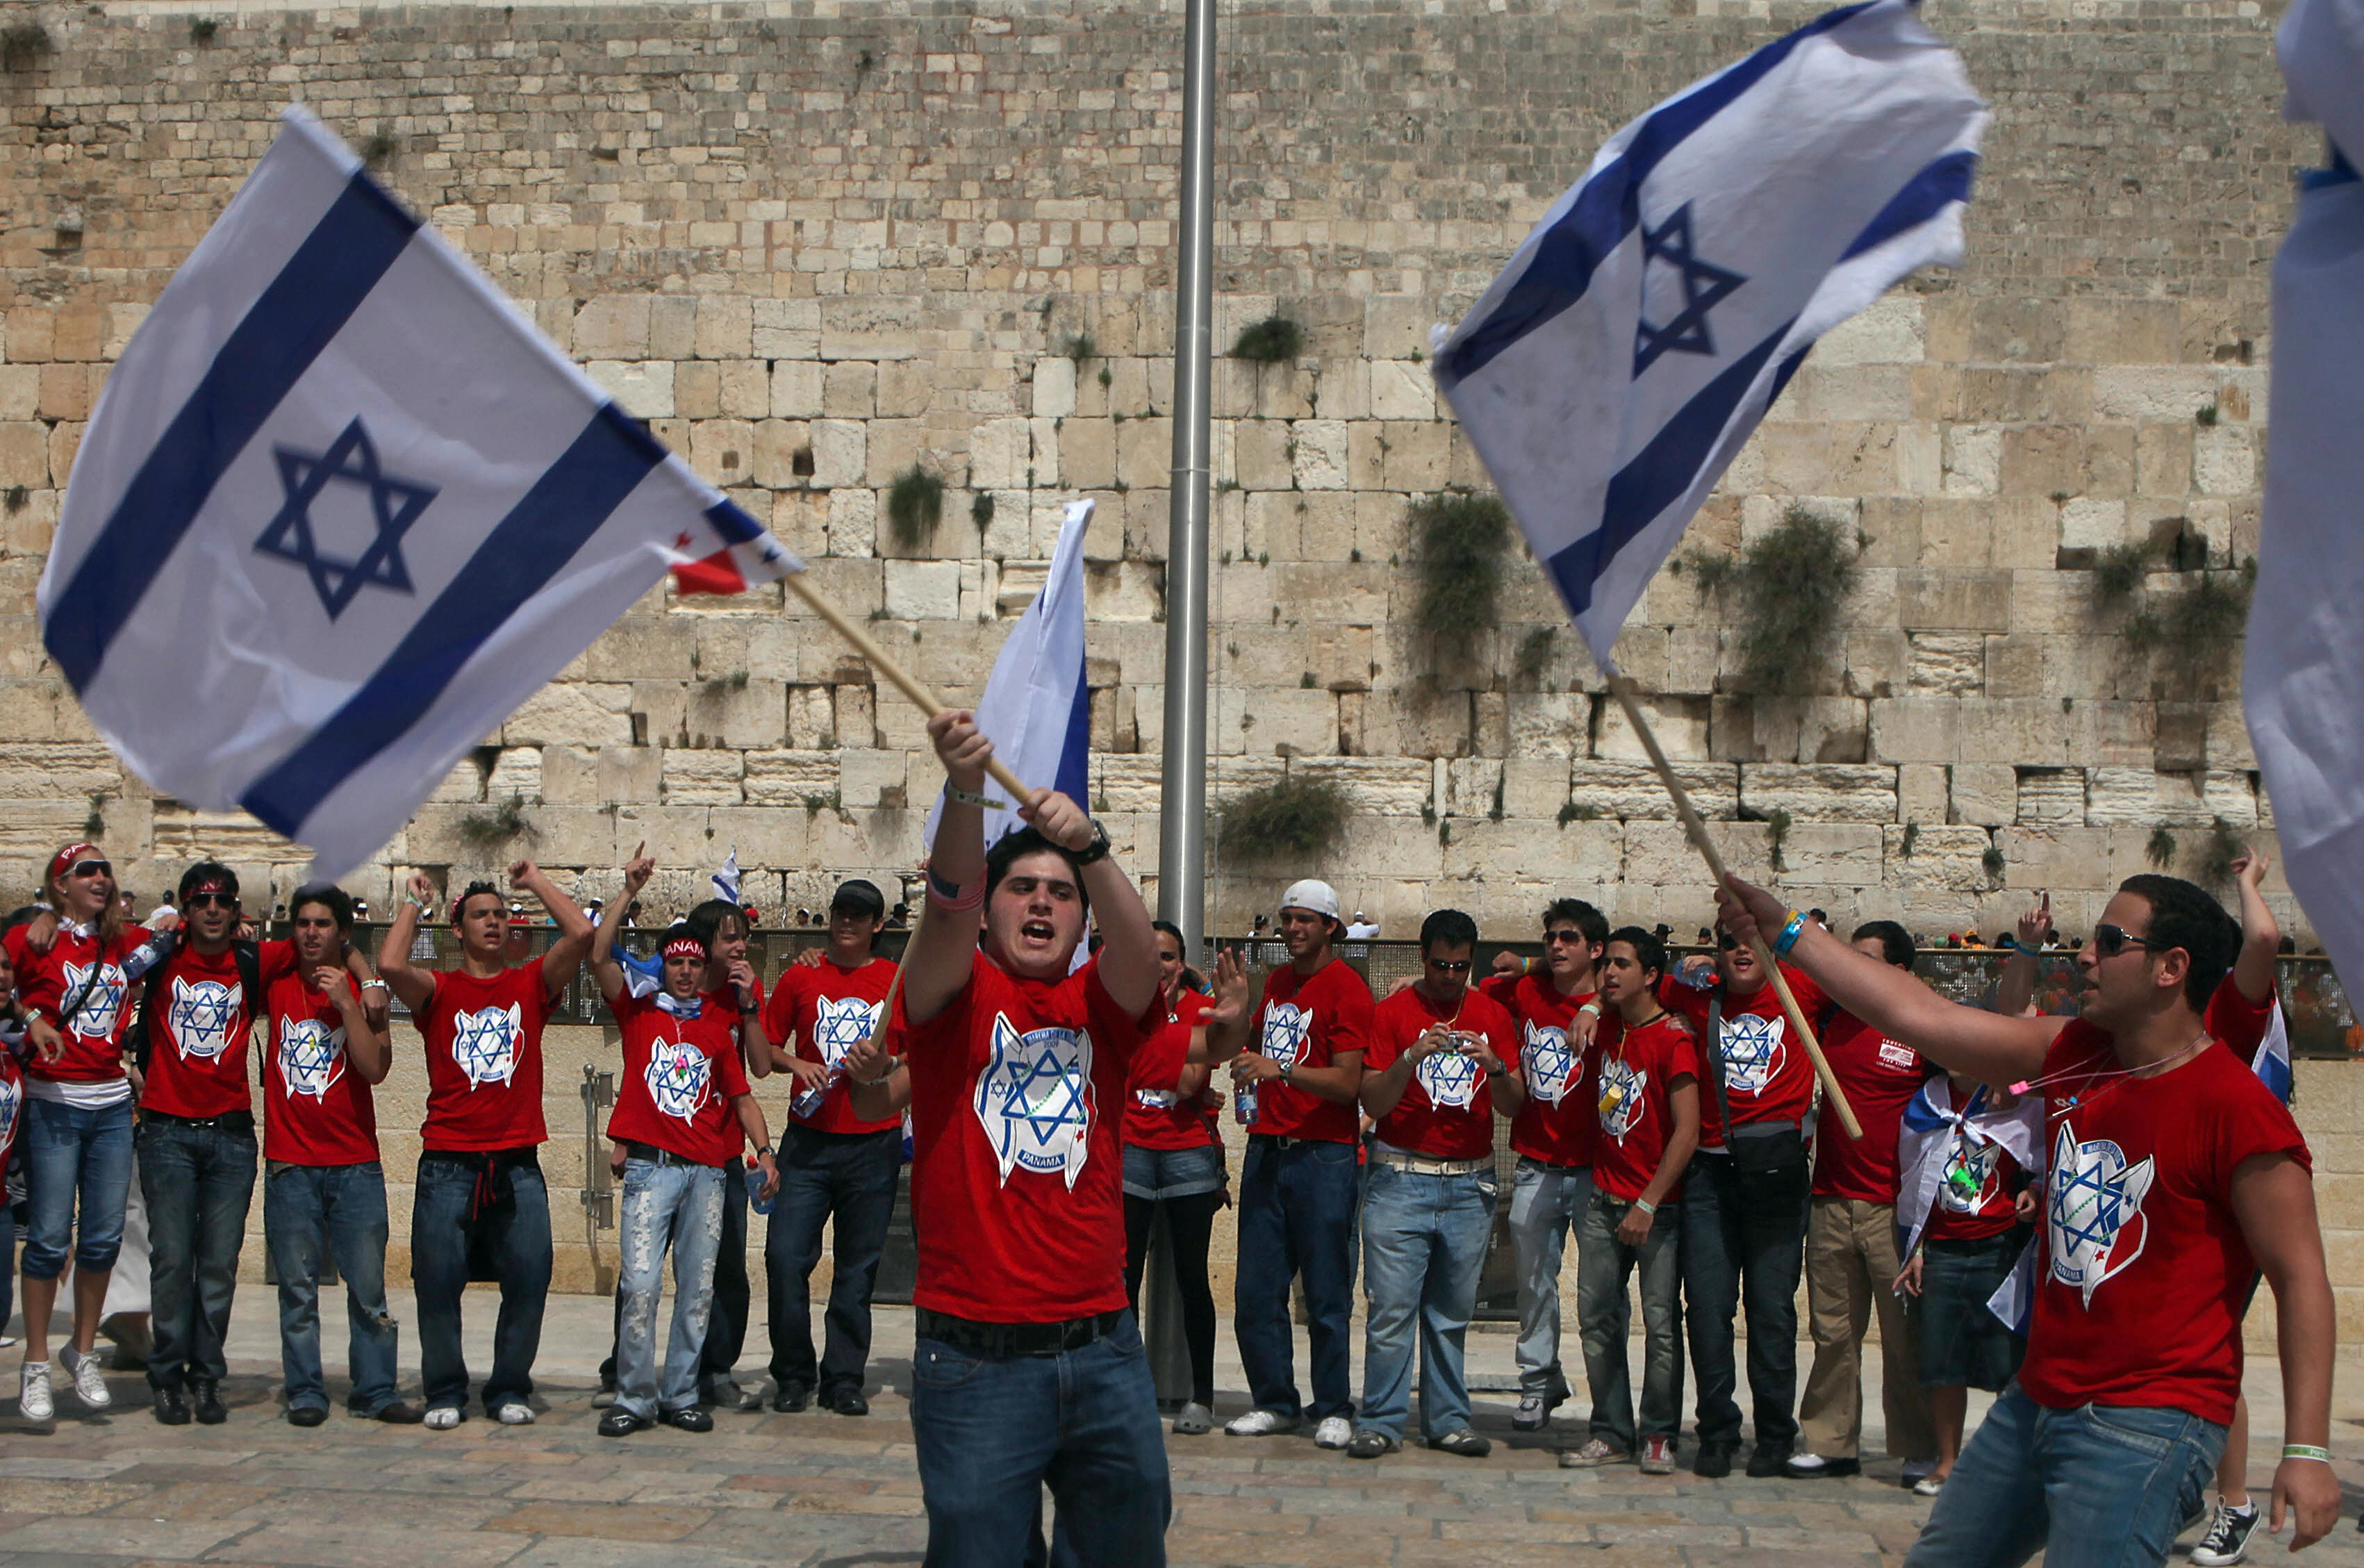 GALI TIBBON/AFP/Getty Images. Jewish youths from communities across the world wave the Israeli national flag at the Western Wall in Jerusalem's Old City, marking Israel's 61st Independence Day on April 29, 2009. Israel today threw a huge birthday bash to celebrate 61 tumultuous years during which the Jewish state made great strides forward but failed to achieve peace with its neighbours.